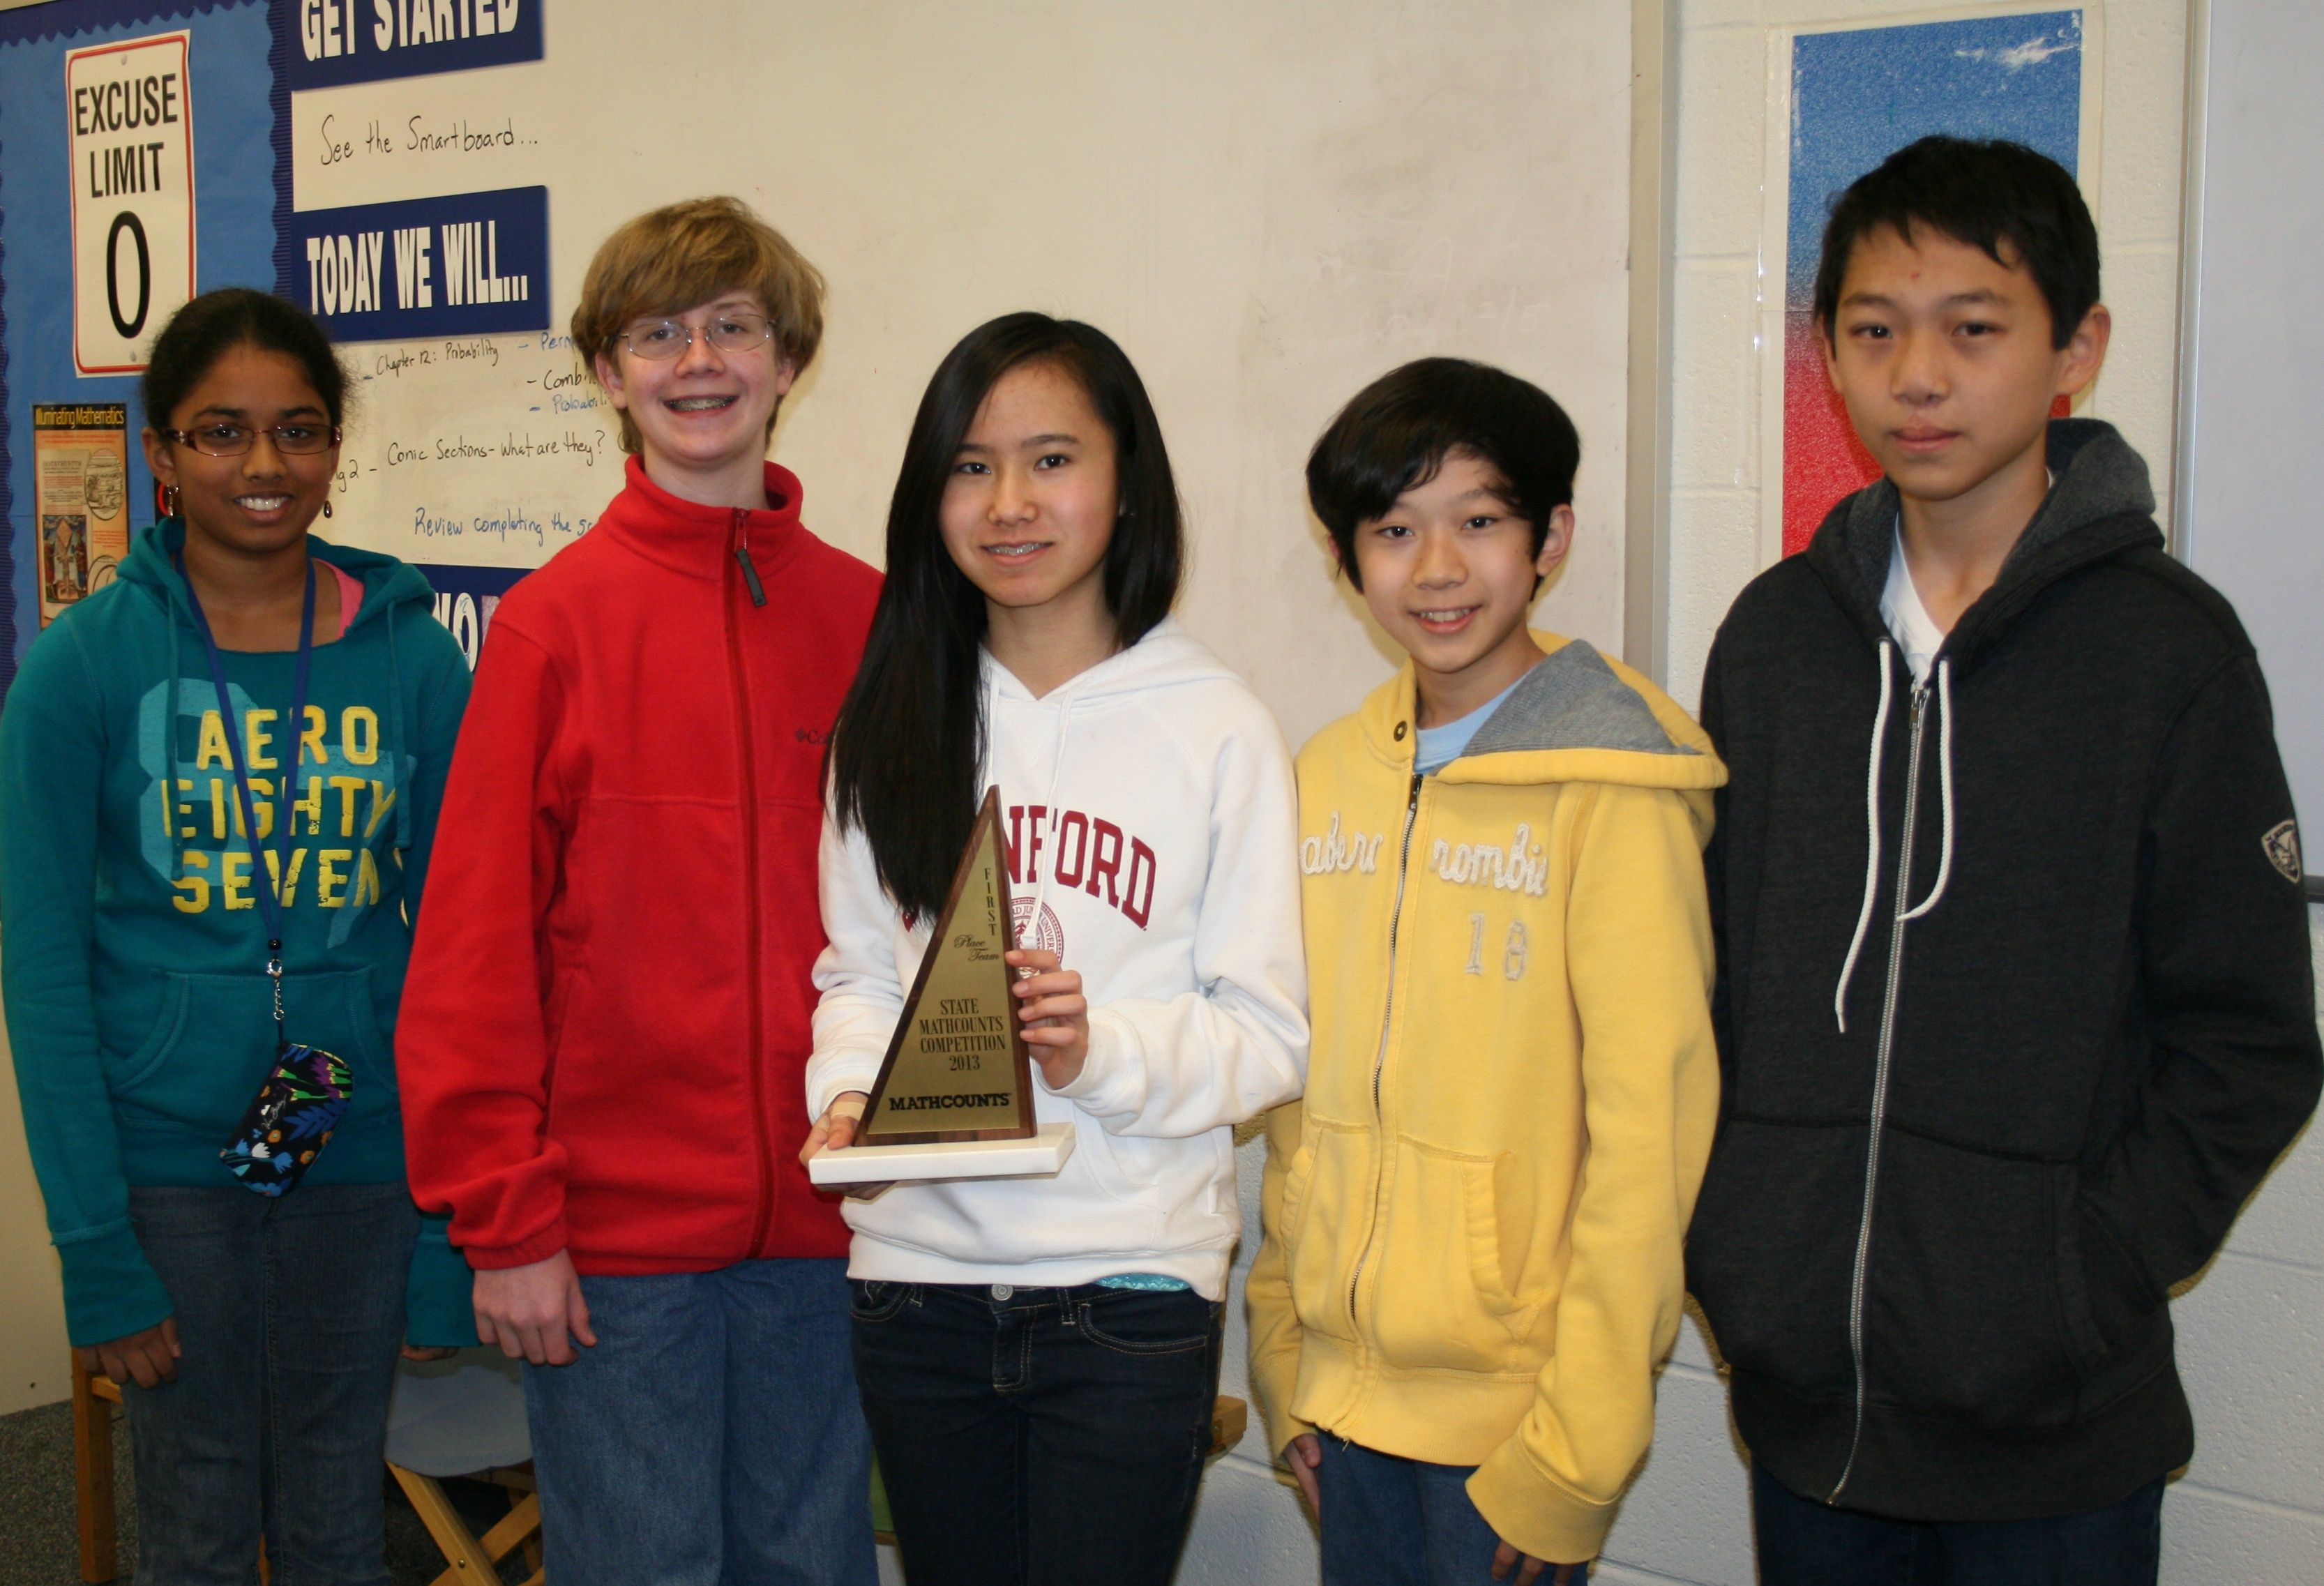 For the fifth straight year Dent Middle School s MATHCOUNTS team